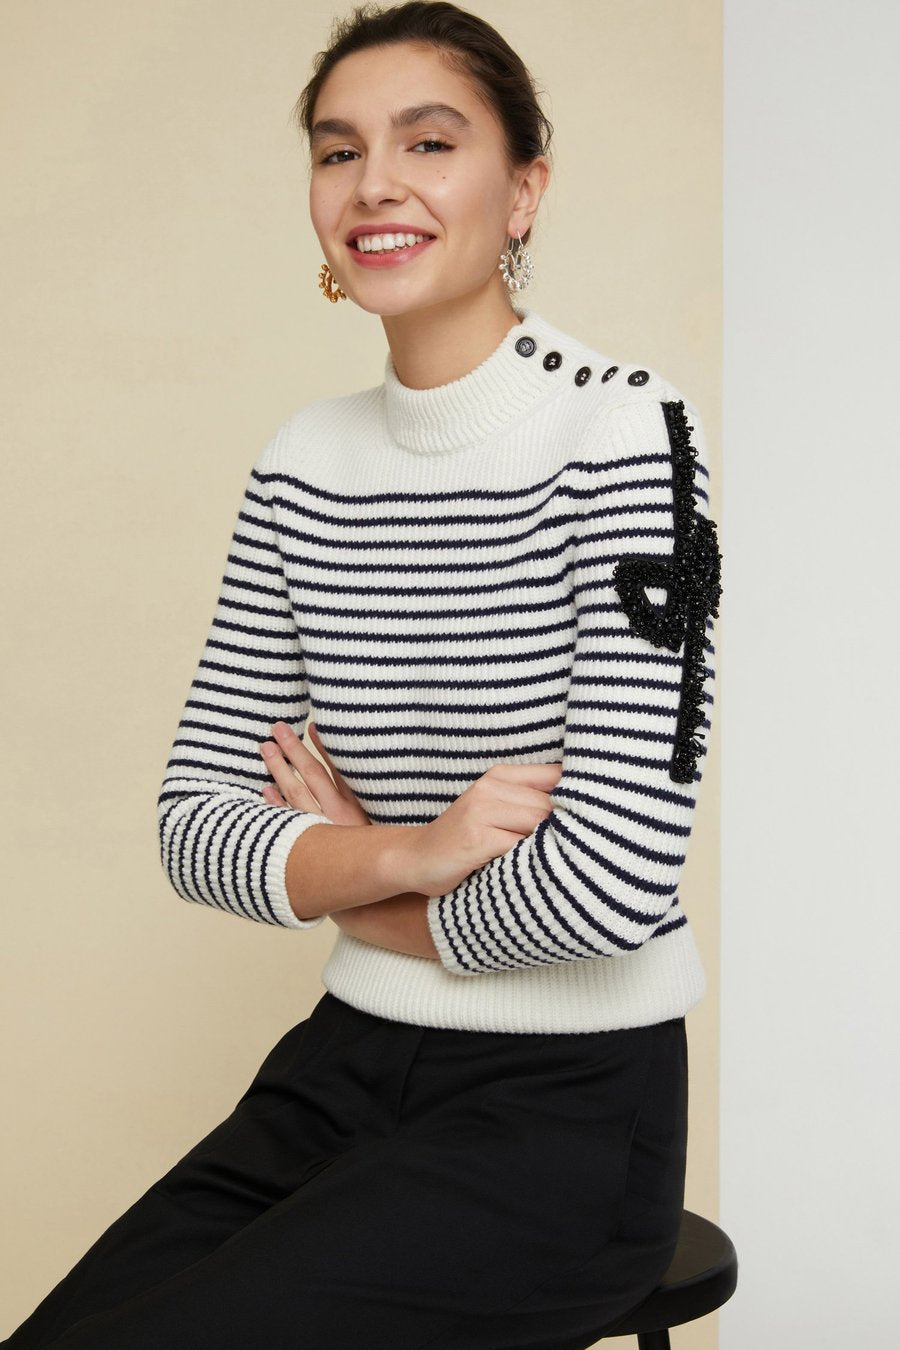 Iconic Jeweled Breton Jumper - Cream